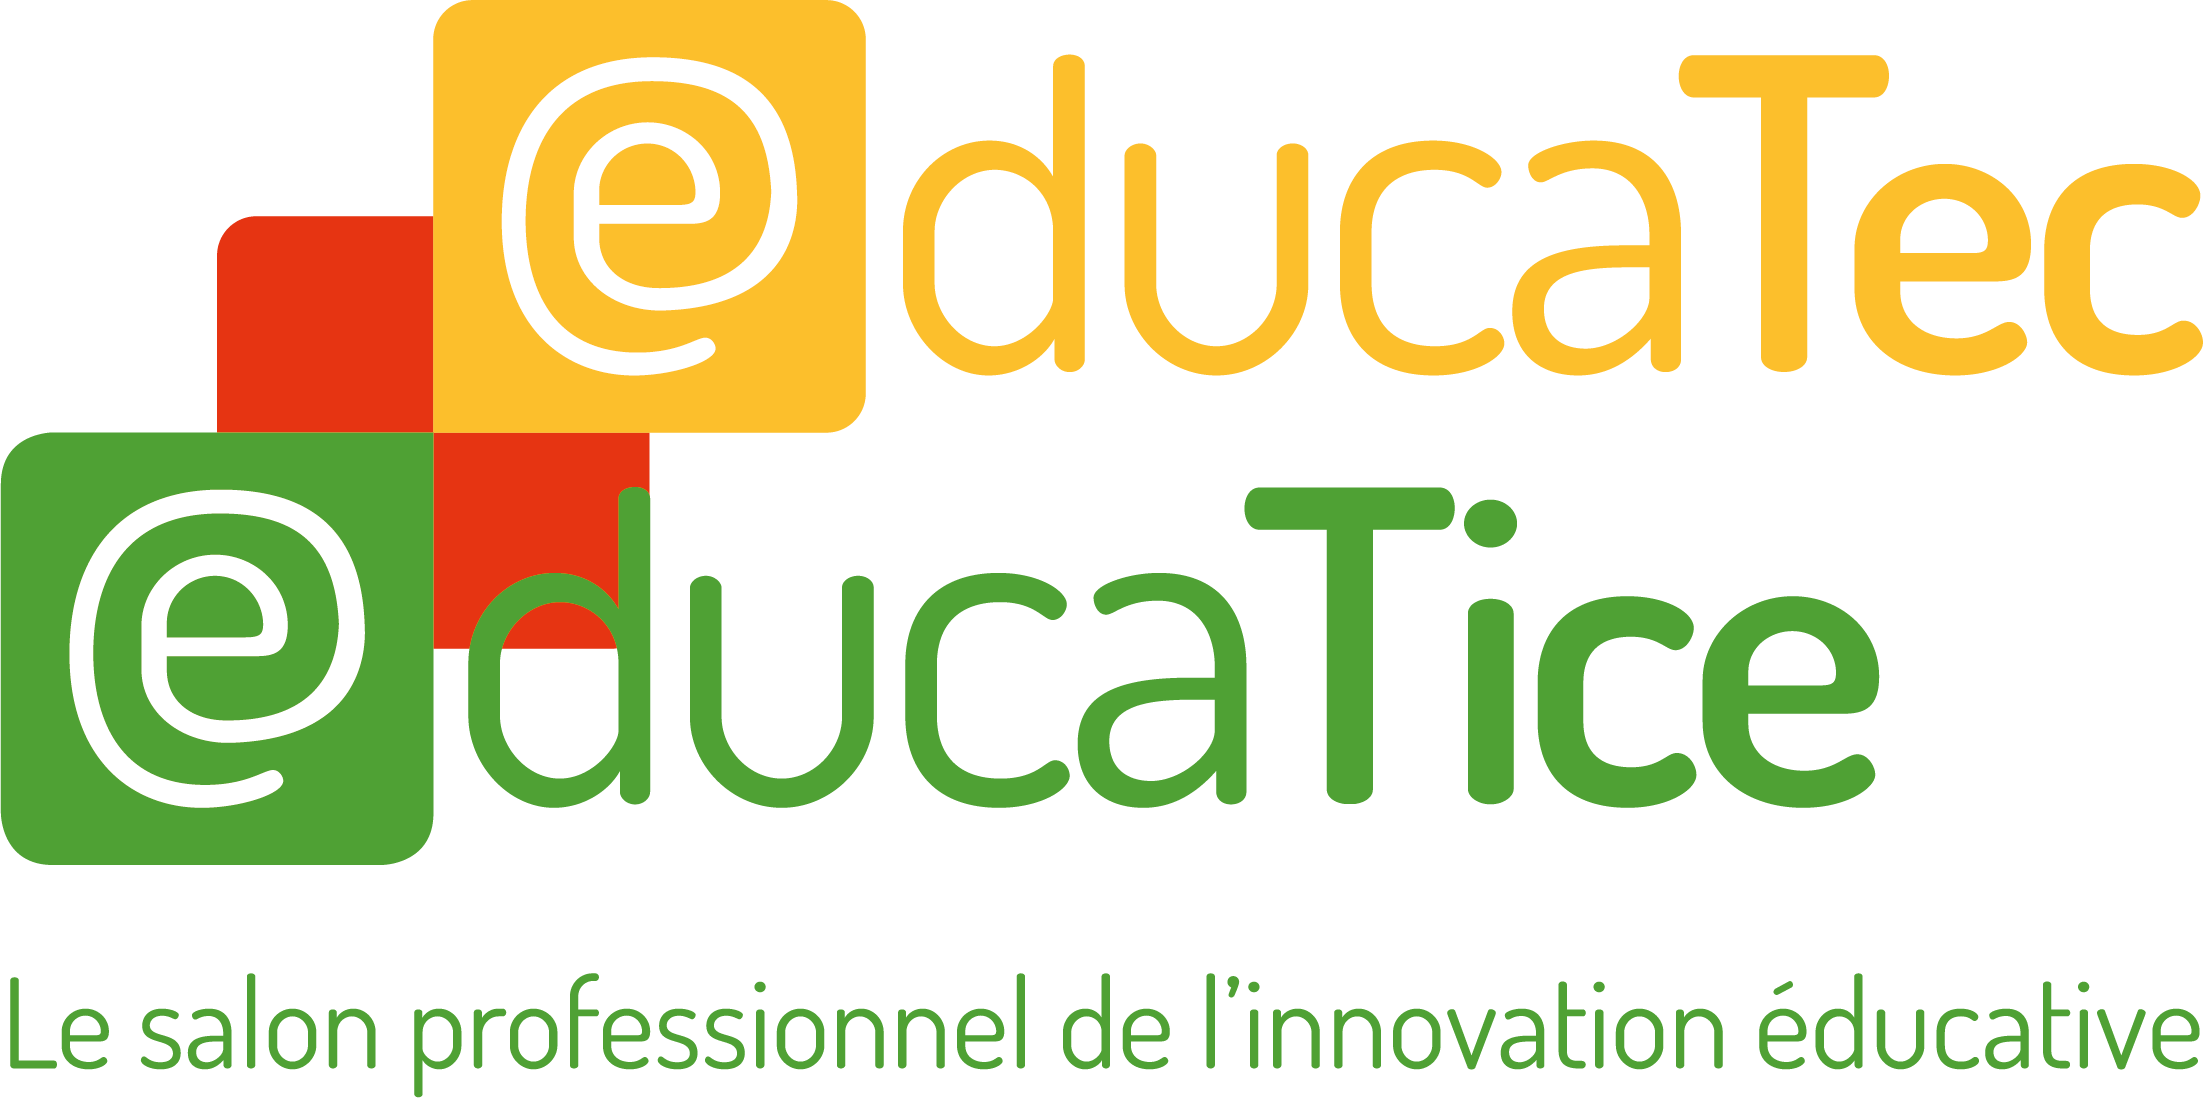 LOGO EDUCATEC EDUCATICE 2018